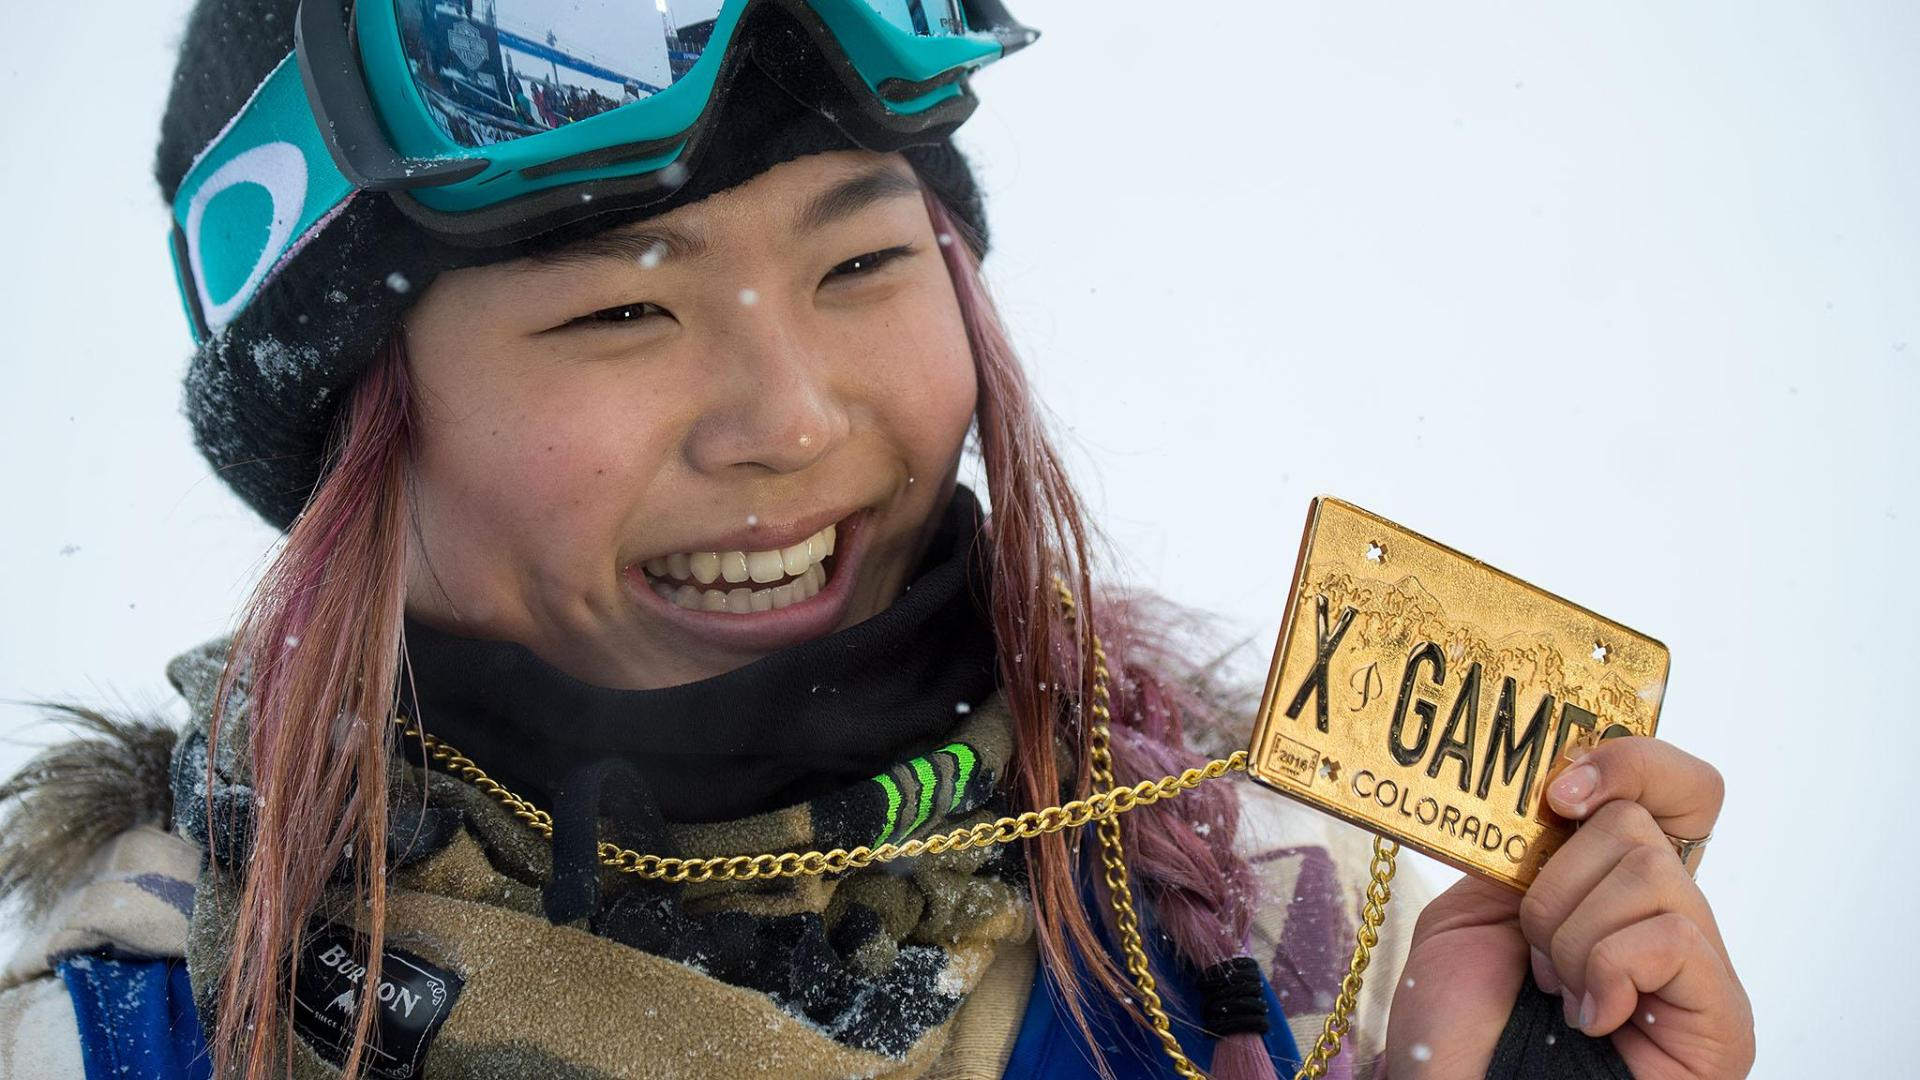 2016 a year of firsts for x games snowboarder chloe kim